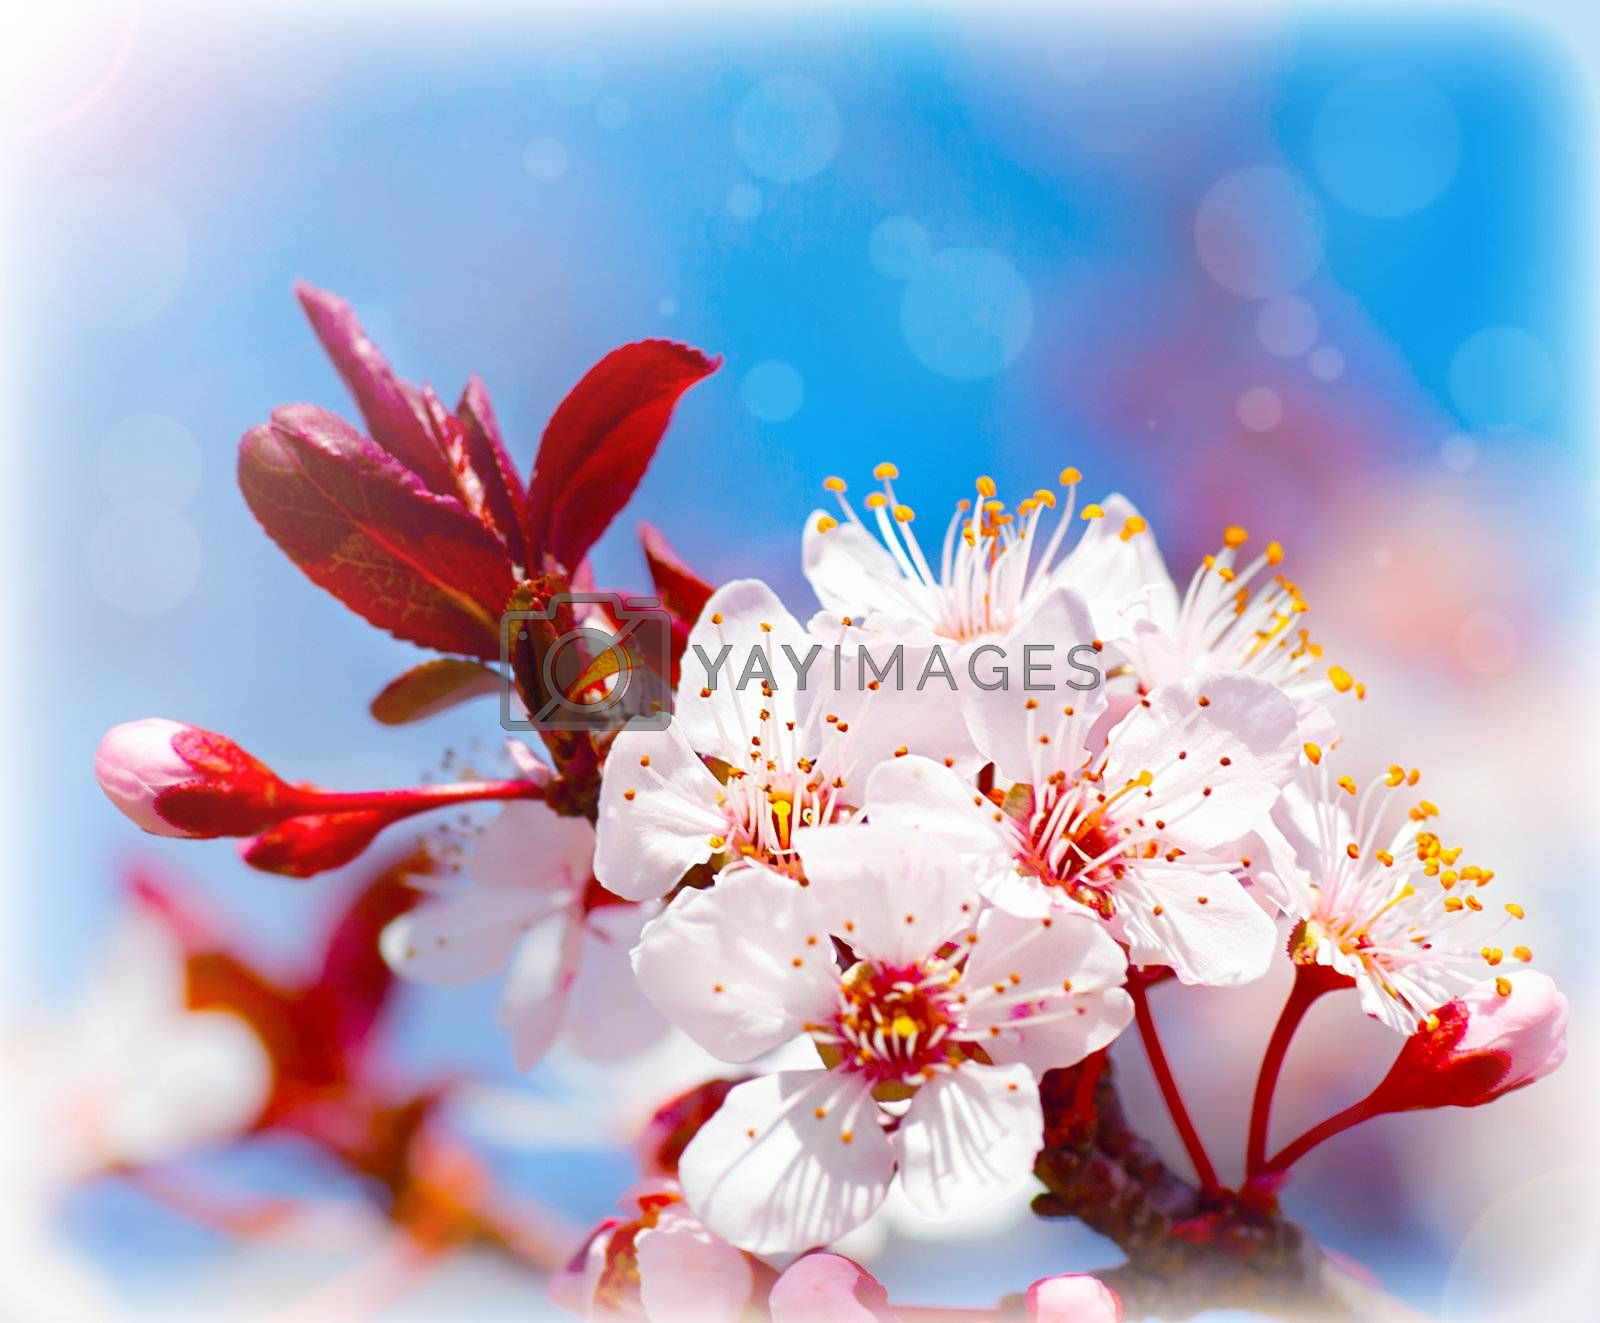 Blooming tree at spring, fresh white flowers on the branch of fruit tree, plant blossom abstract background, seasonal nature beauty, dreamy soft focus picture of springtime